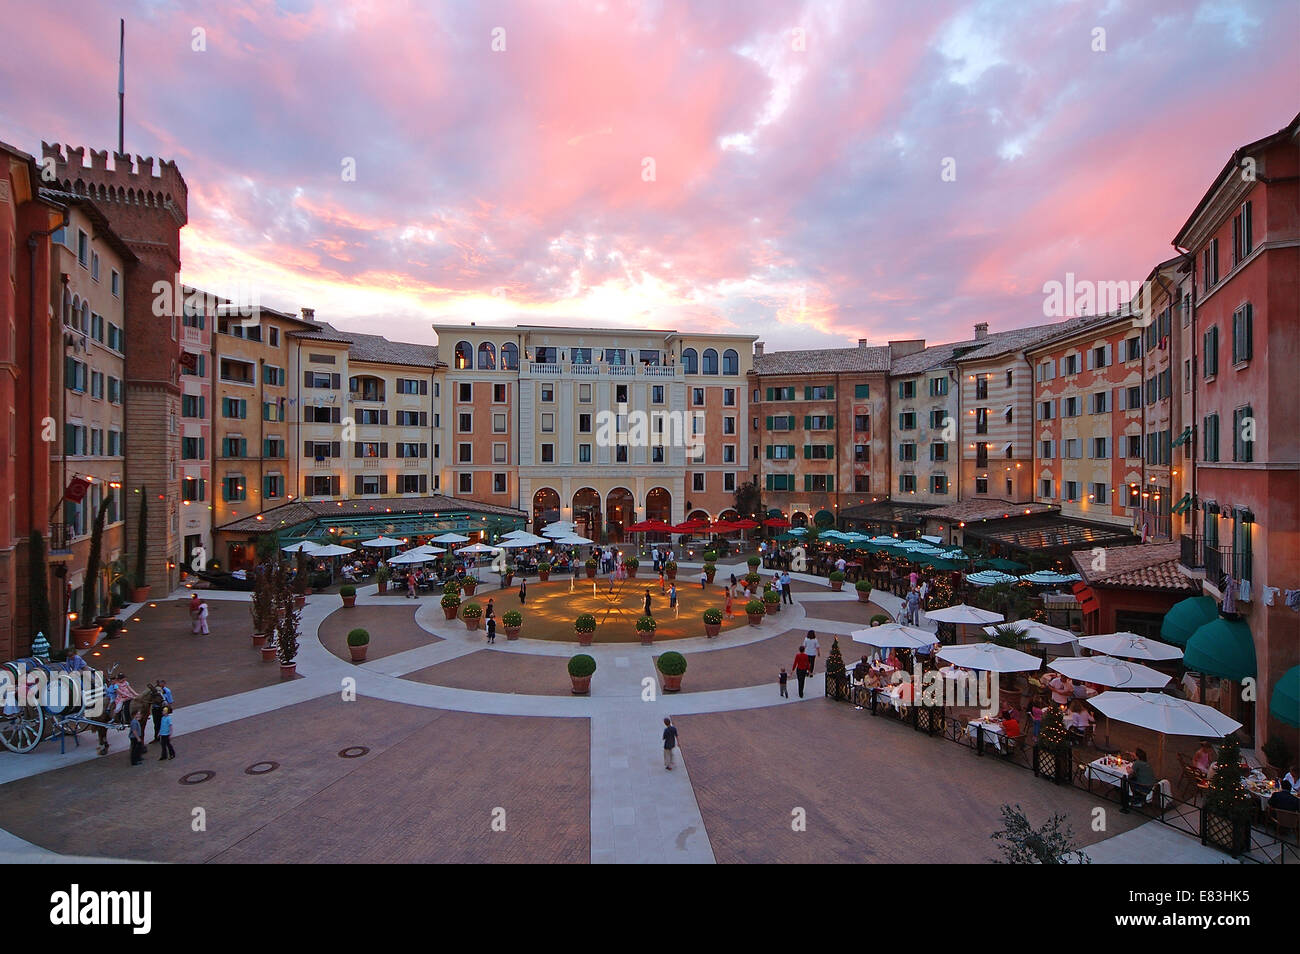 Hotel Colosseo - Stock Image